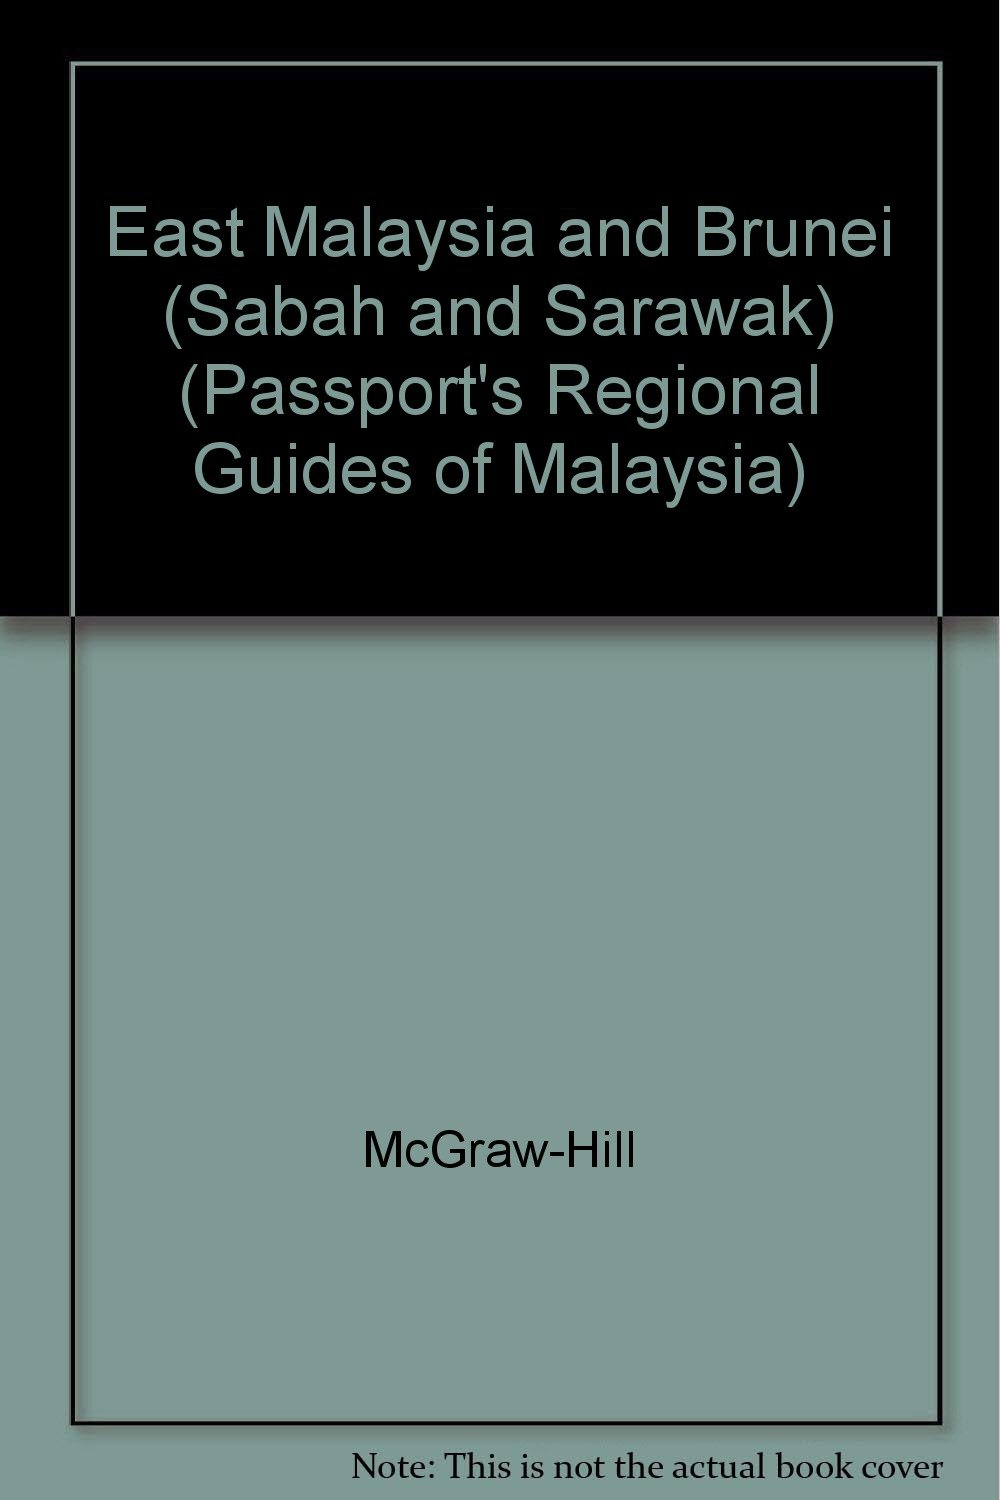 east-malaysia-and-brunei-passport-s-regional-guides-of-malaysia